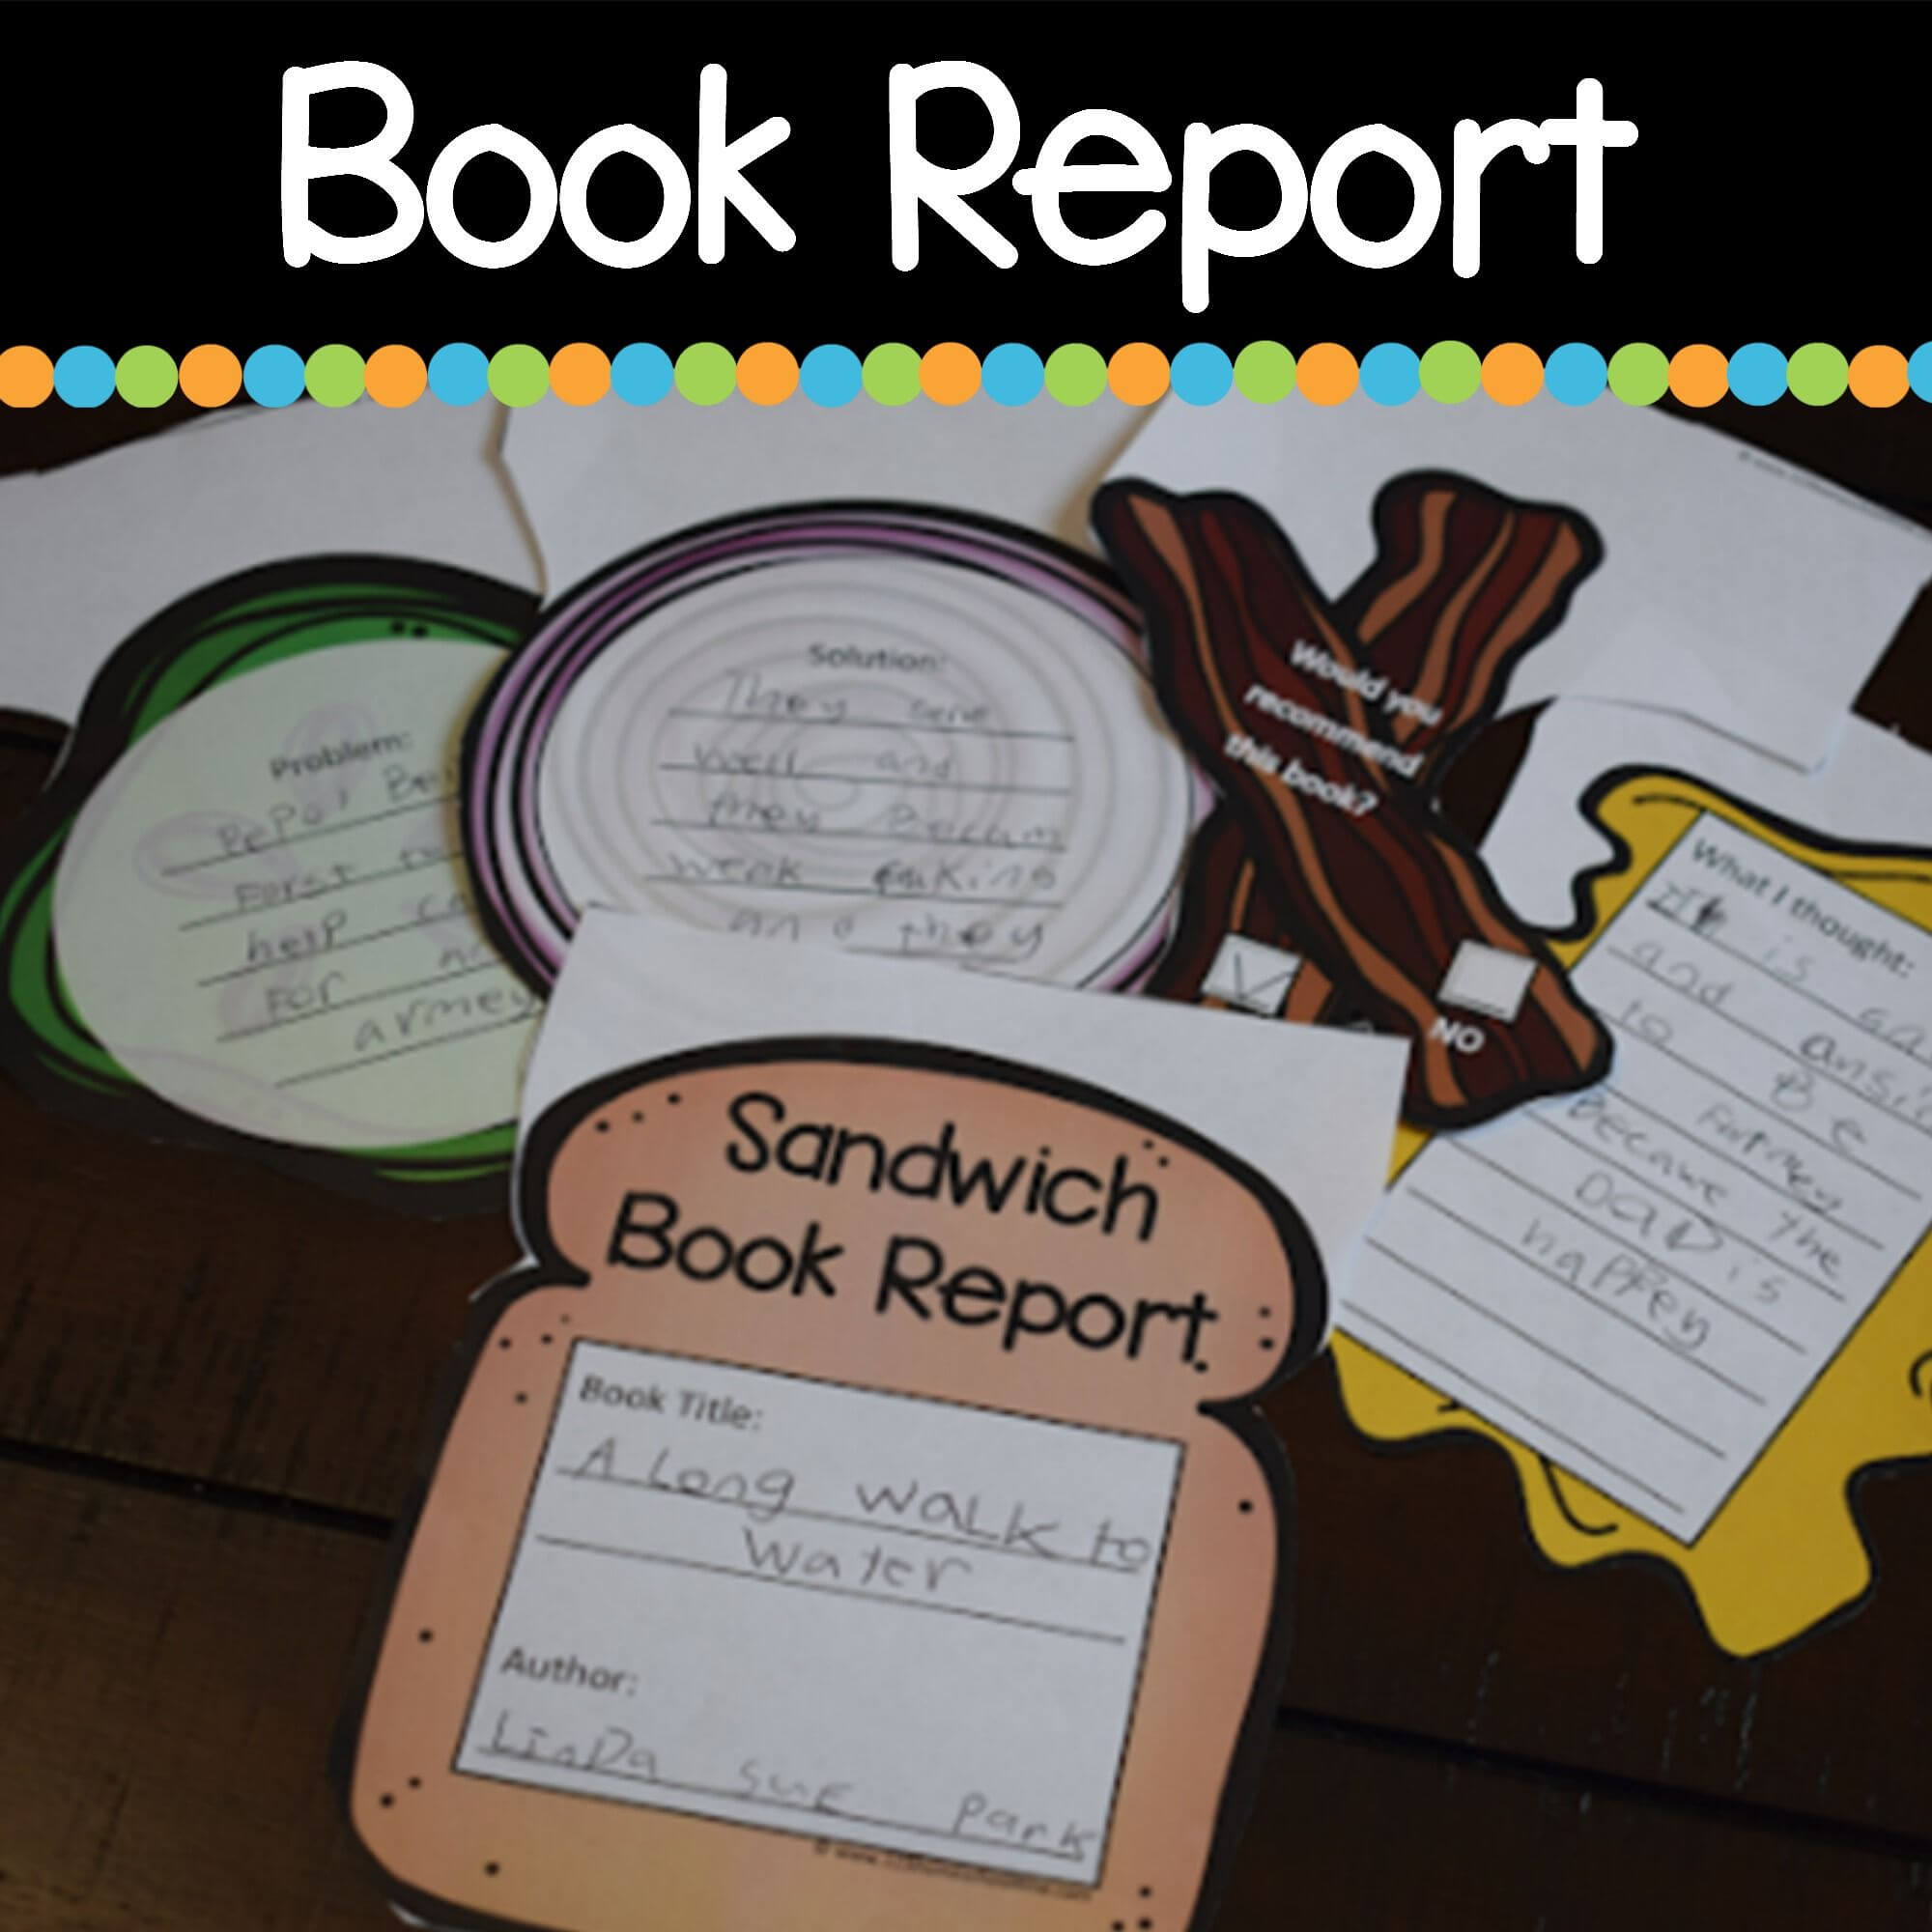 Sandwich Book Report Printable | Writing | Improve Reading in Sandwich Book Report Printable Template